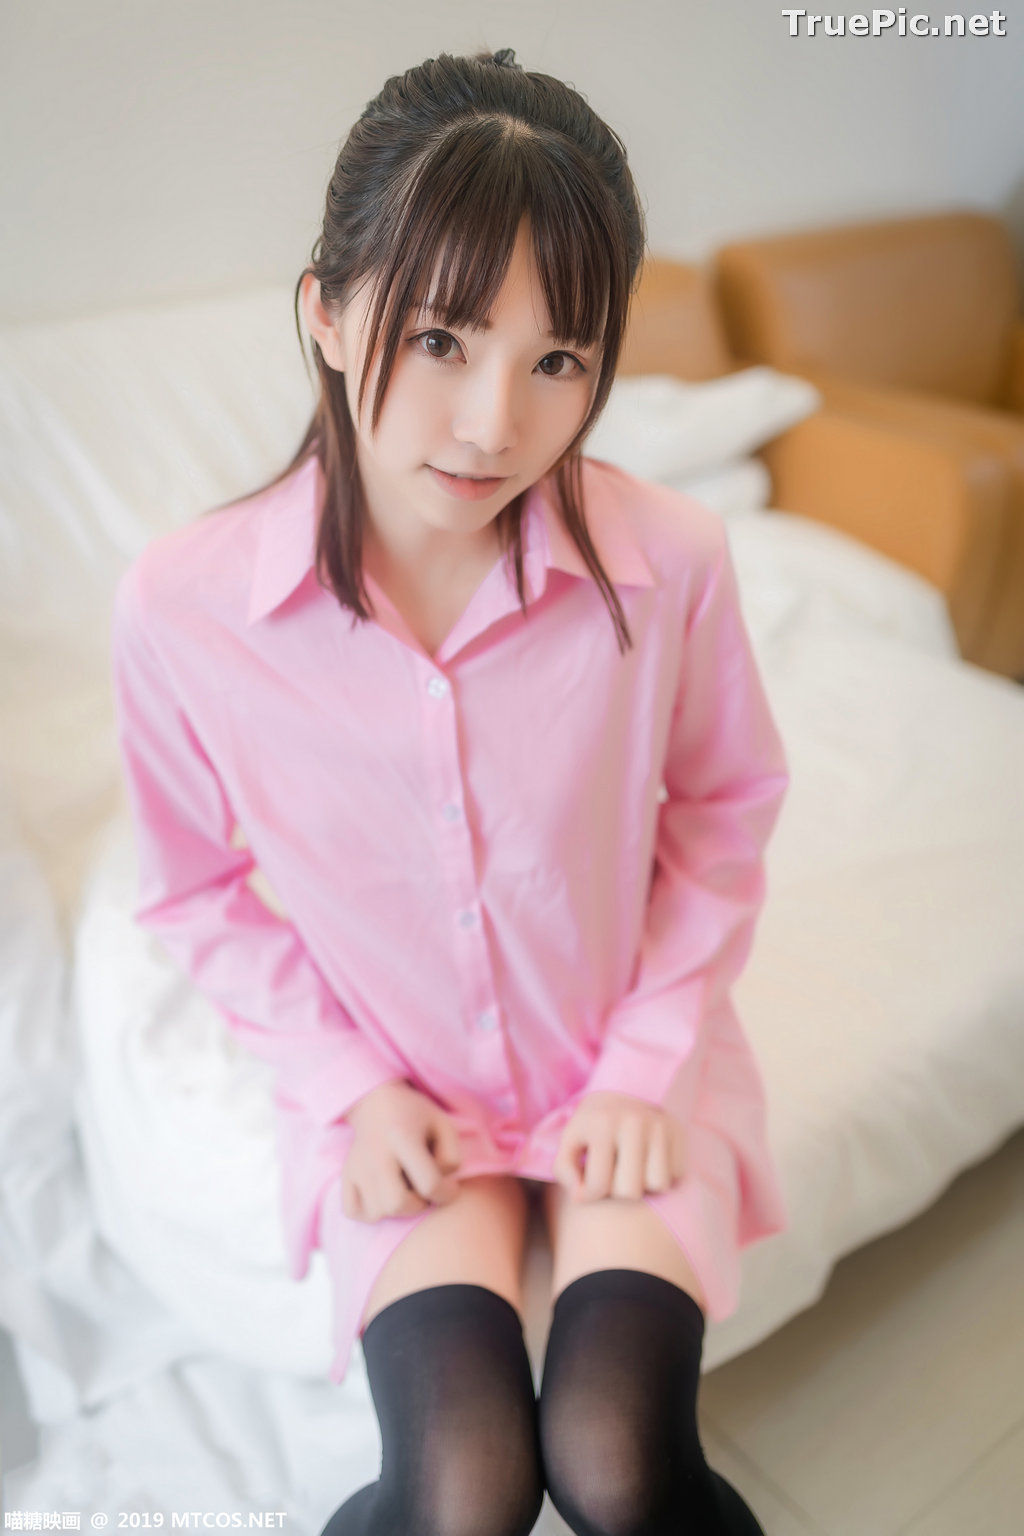 Image [MTCos] 喵糖映画 Vol.022 – Chinese Model – Pink Shirt and Black Stockings - TruePic.net - Picture-1